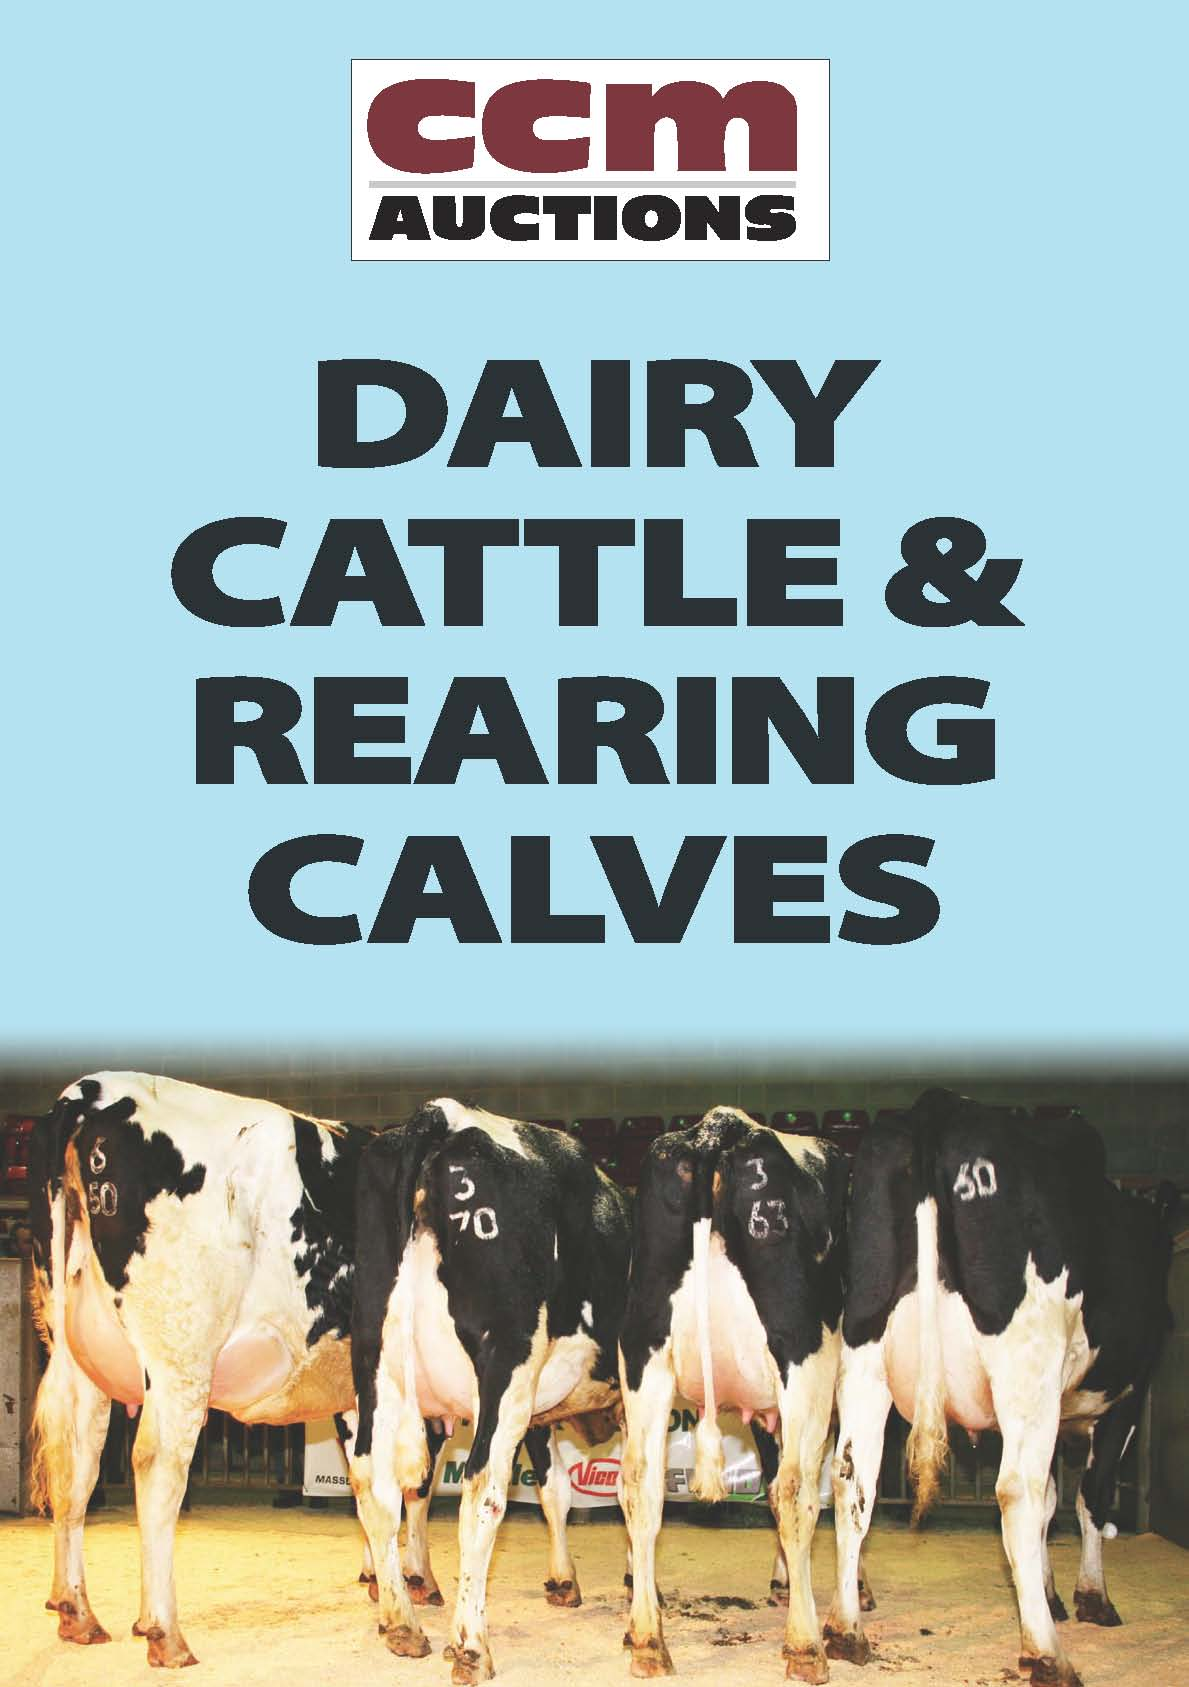 DAIRY & CALVES - MONDAY 26TH OCTOBER 2015